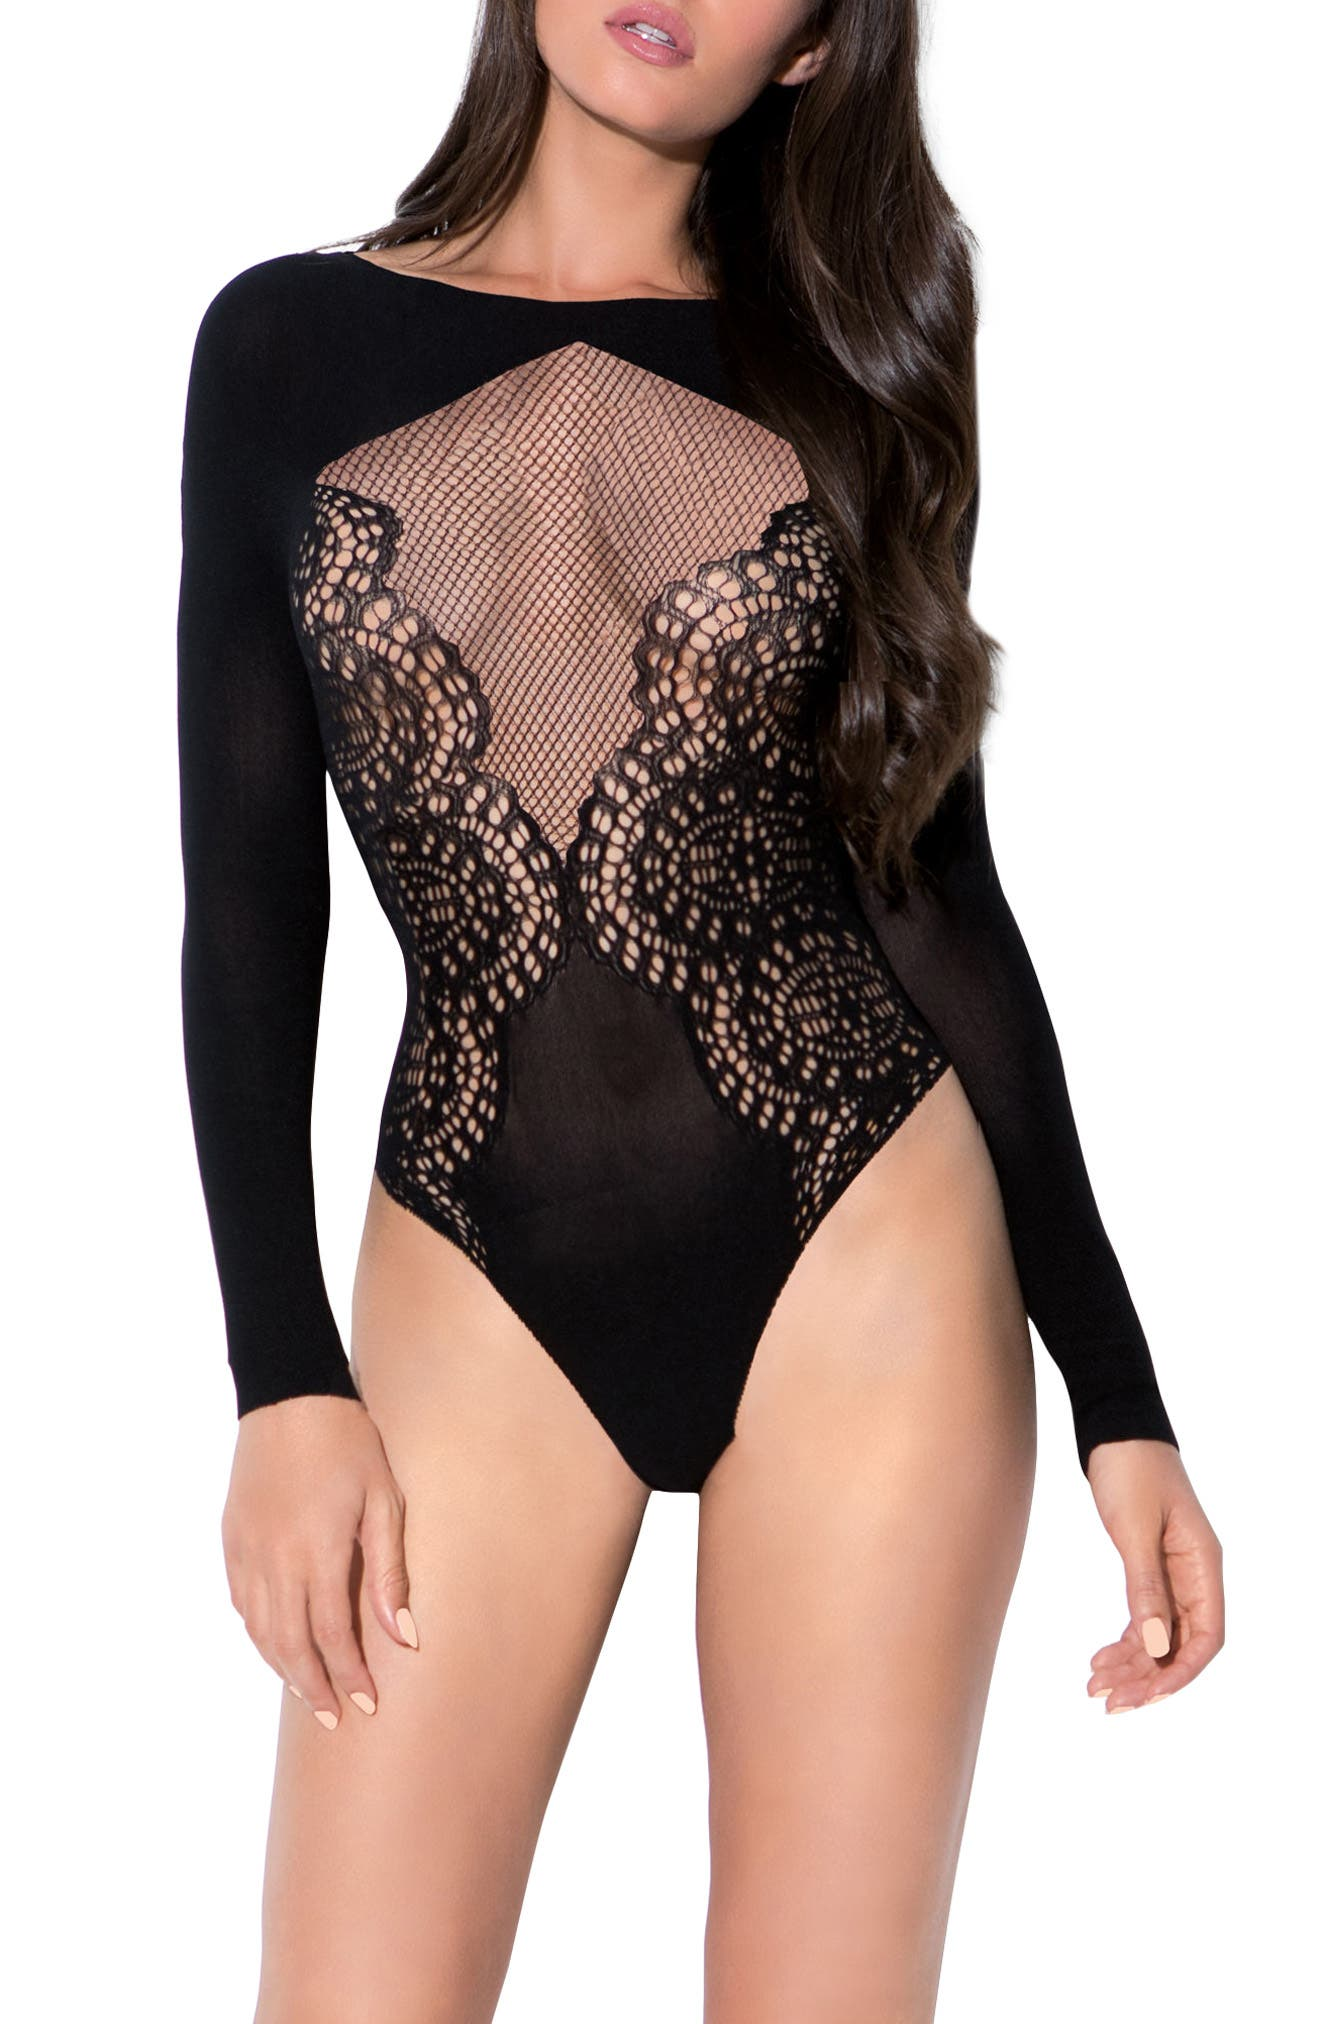 Flamenco Lace Thong Bodysuit,                             Main thumbnail 1, color,                             Black